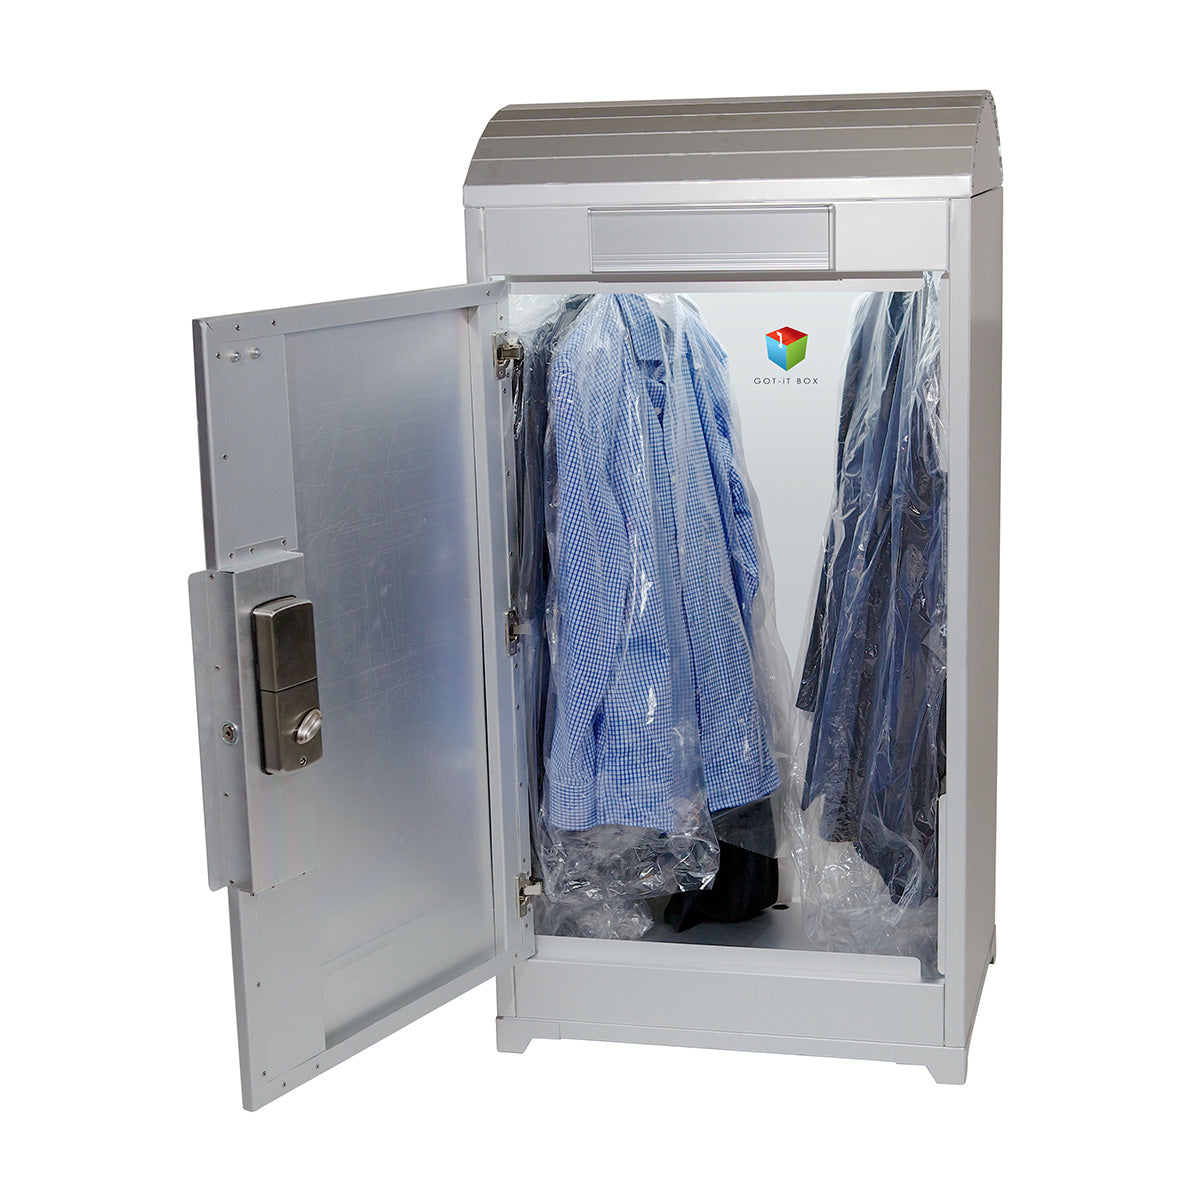 Dry Cleaning Delivery Box